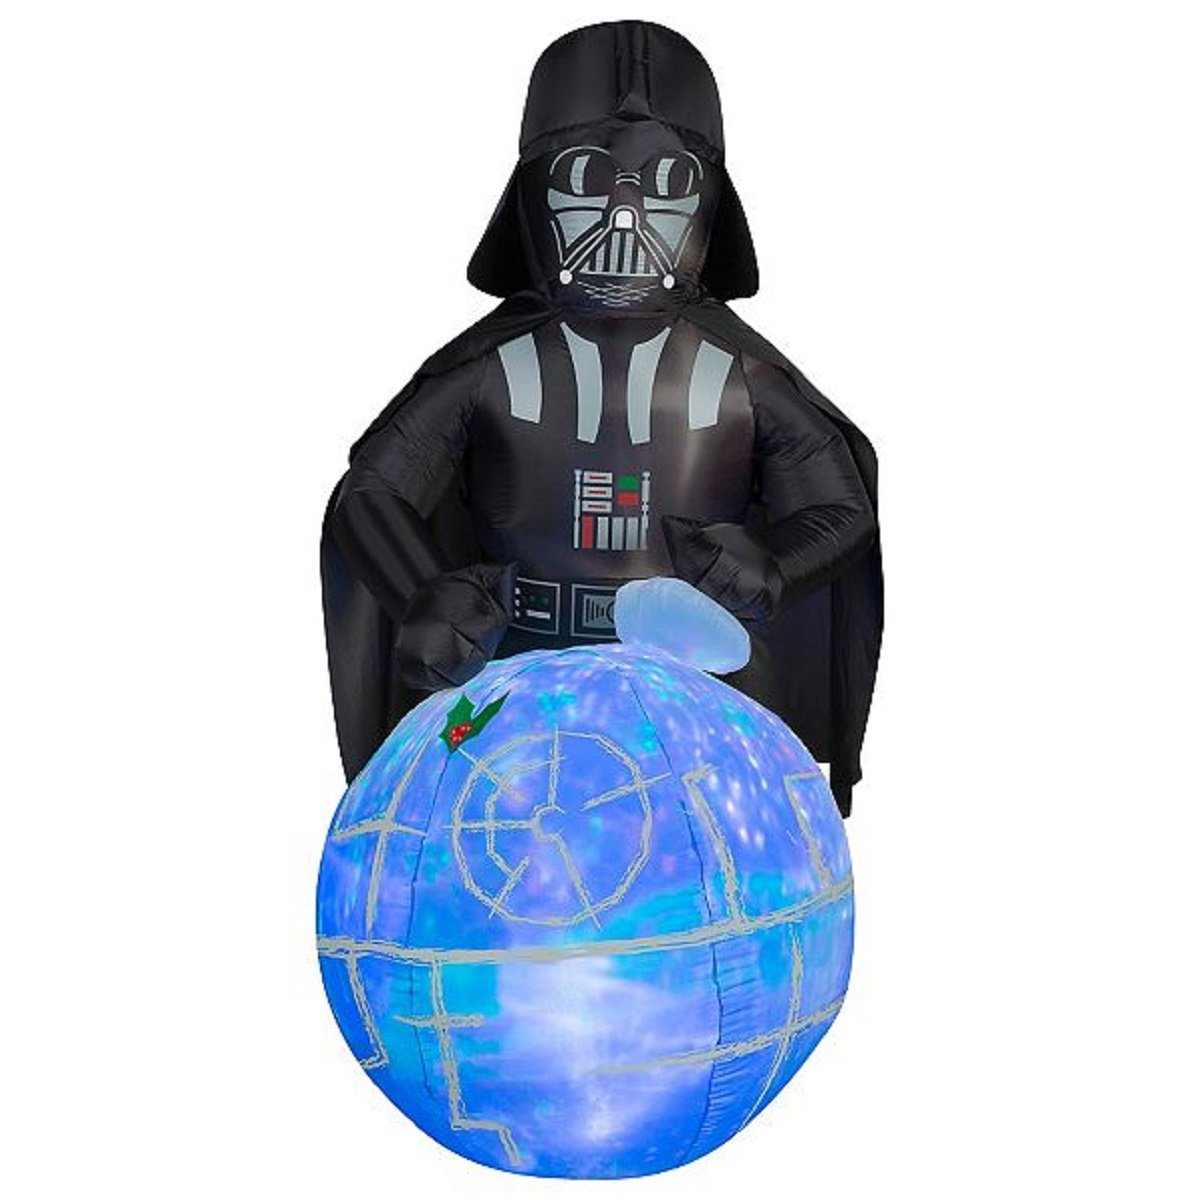 Christmas Inflatable Star Wars Darth Vader w/ Projection Death Star That Plays The Imperial March